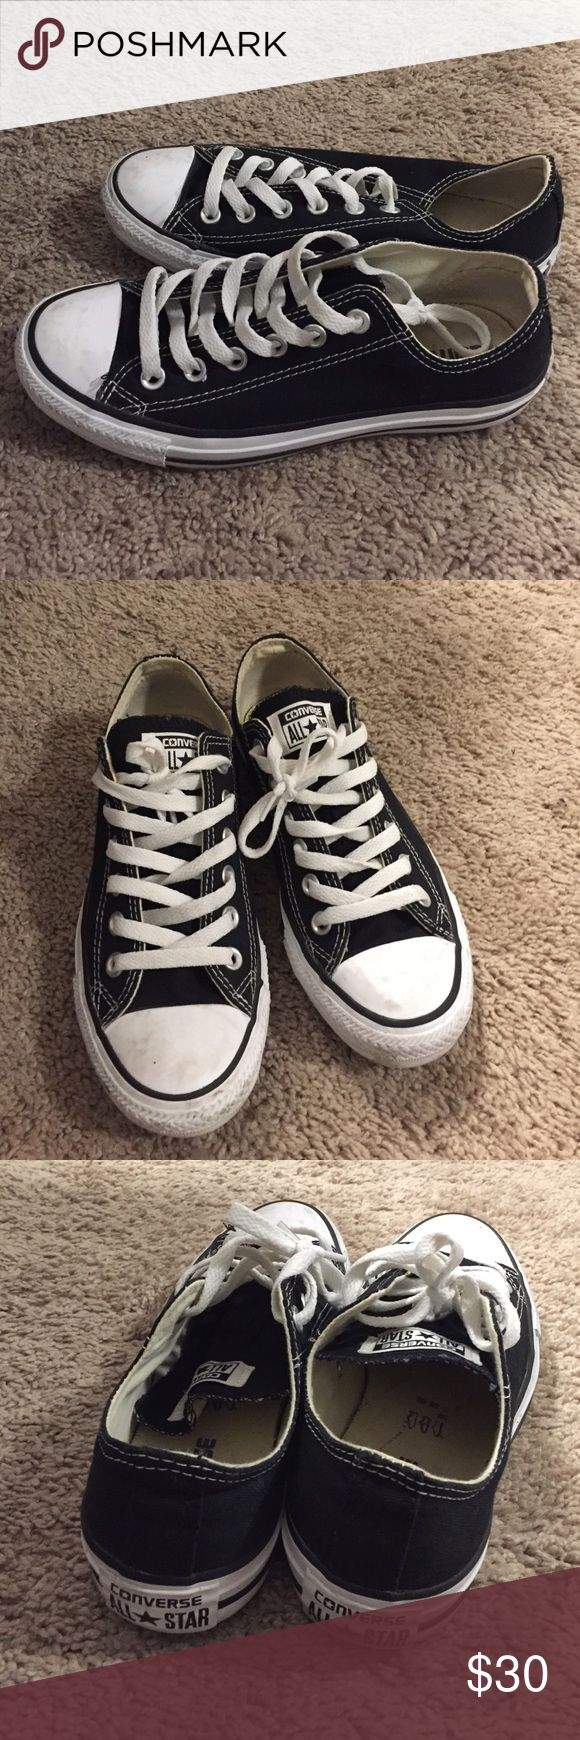 Black low top Converse Sz 7 women's Men's Sz 5 Low top chucks. Great condition. Sz 5 in men's Sz 7 in women's Converse Shoes Athletic Shoes